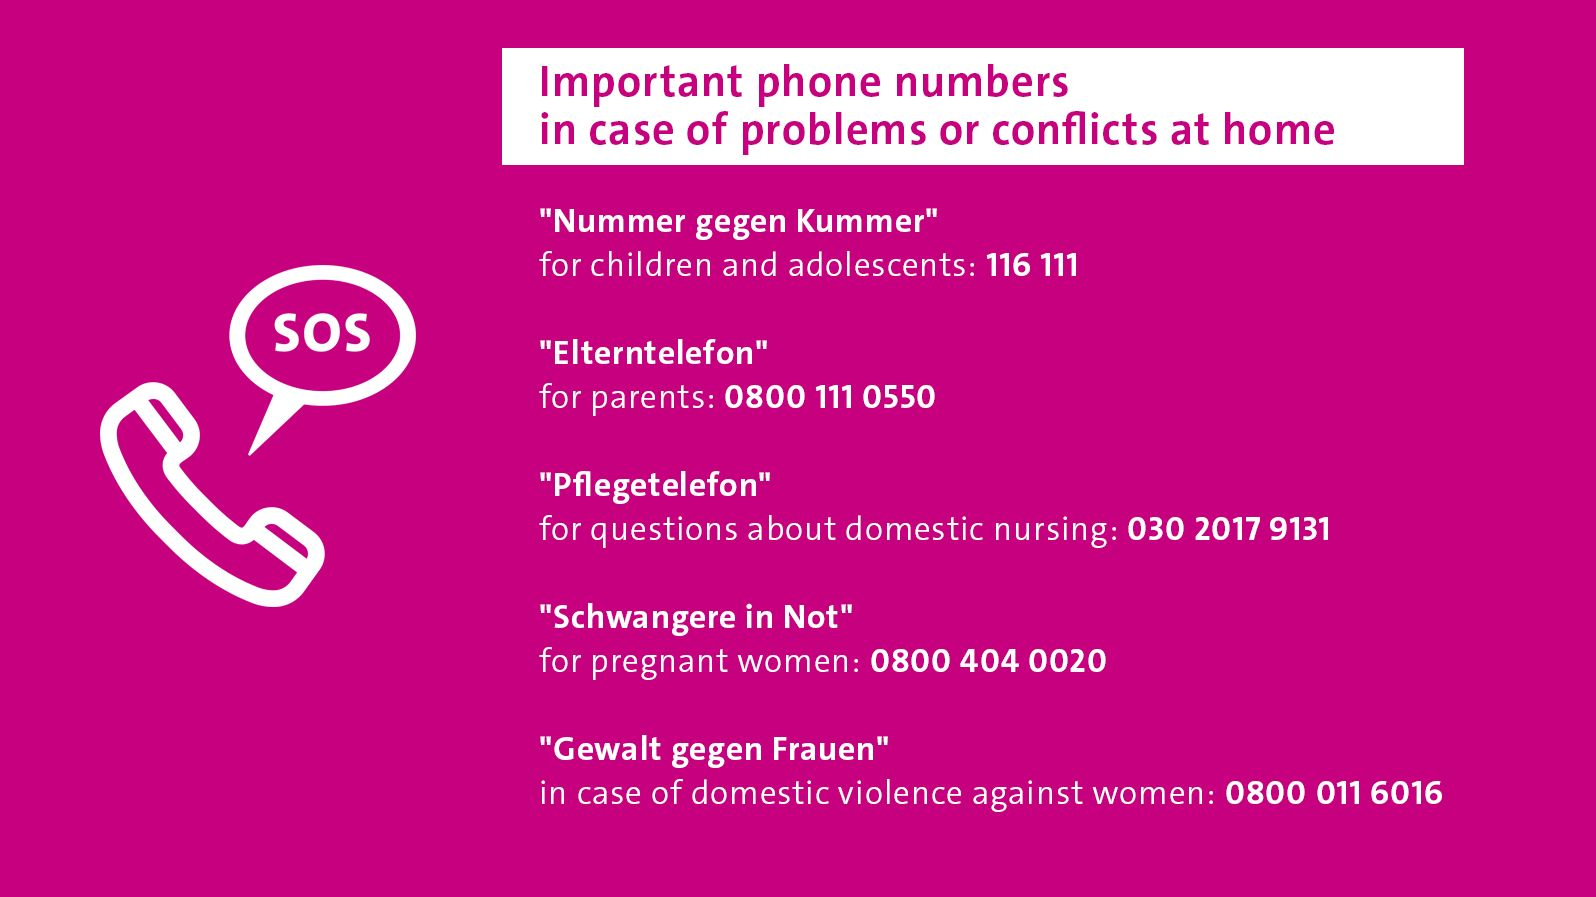 "Important phone numbers in case of problems or conflicts at home  ""Nummer gegen Kummer"" for children and adolescents: 116 111  ""Elterntelefon"" for parents: 0800 111 0550  ""Pflegetelefon"" for questions about domestic nursing: 030 2017 9131  ""Schwangere in Not""